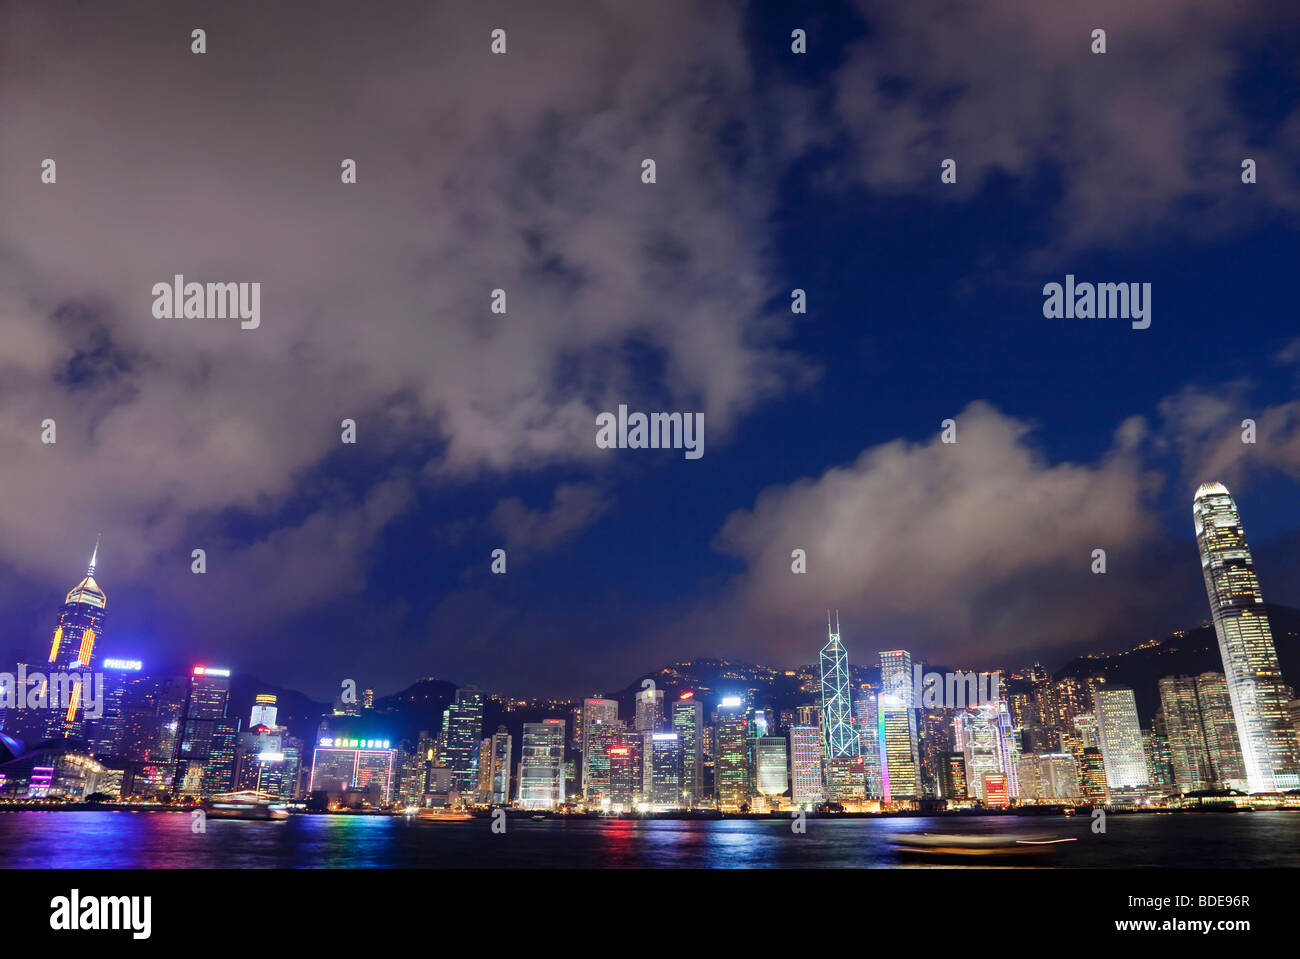 View across Victoria Harbour of high rise buildings at night in Hong Kong, China. - Stock Image